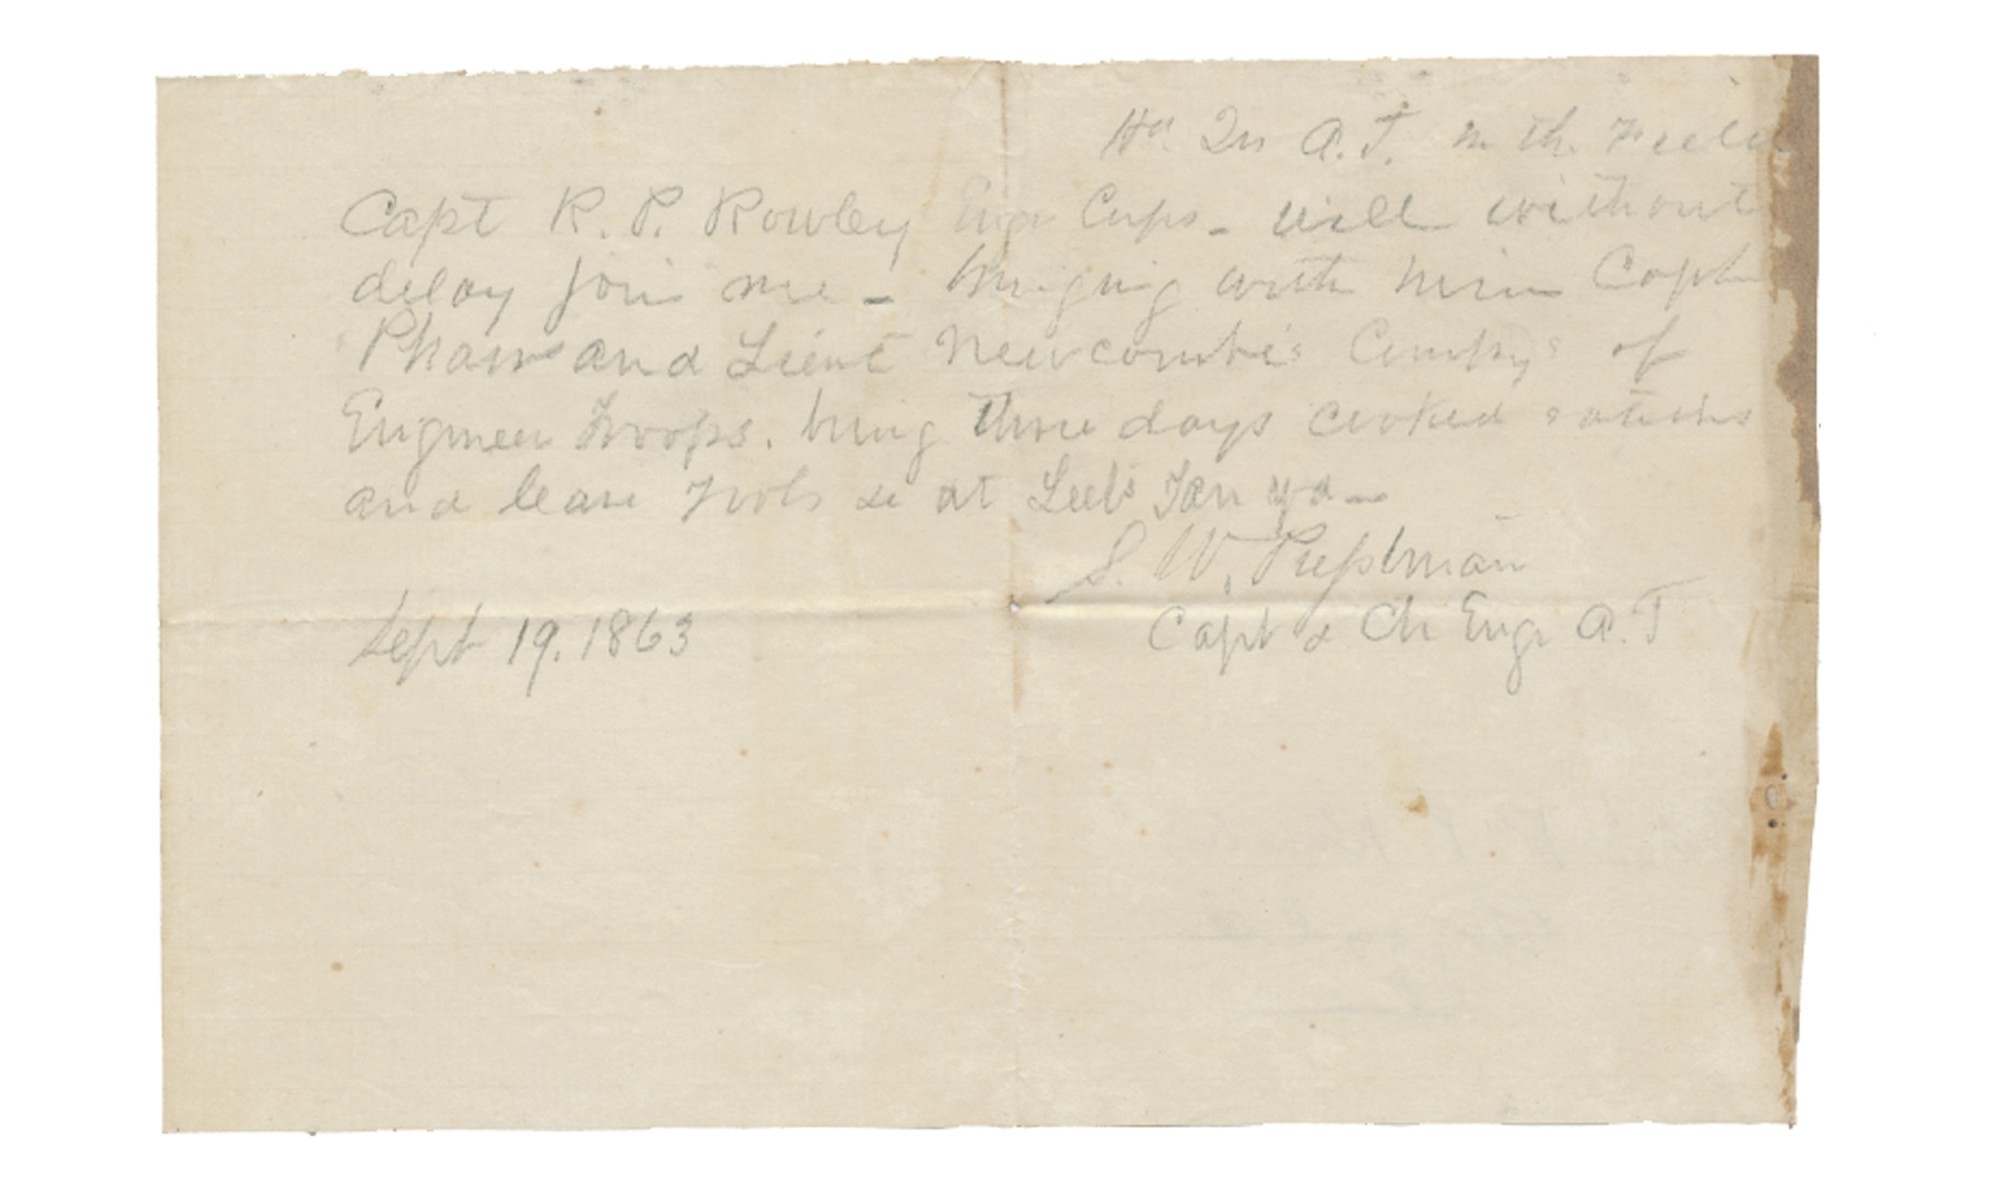 1863 CONFEDERATE CORPS OF ENGINEERING NOTE WRITTEN BY CAPT. STEPHEN W. PRESSTMAN